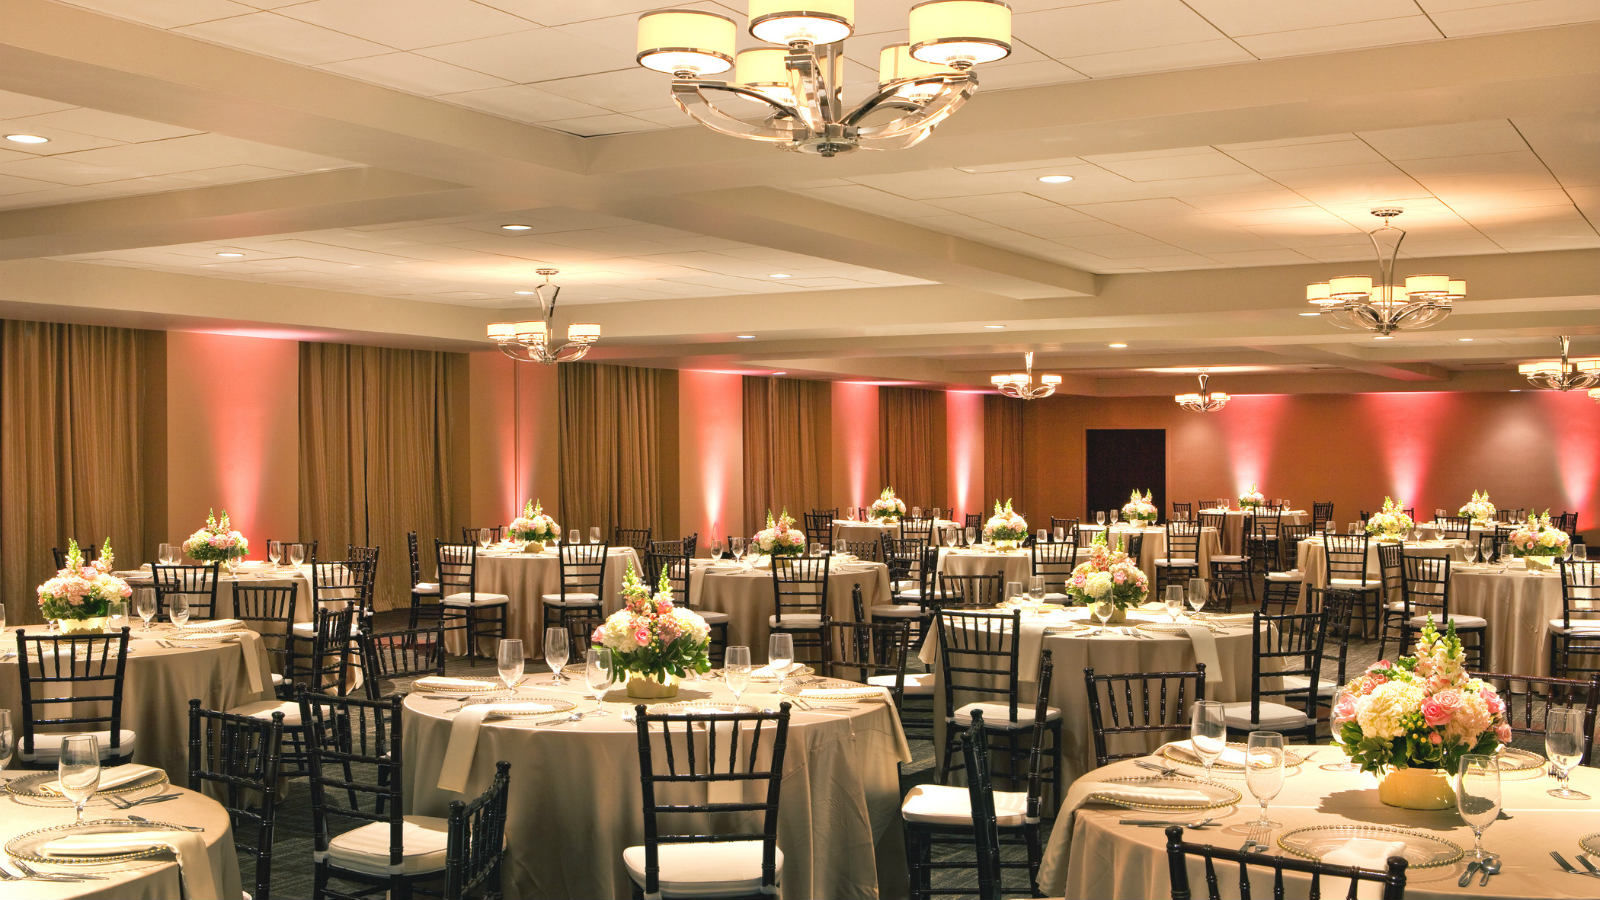 Event Venues in Scranton, PA - Meeting Room